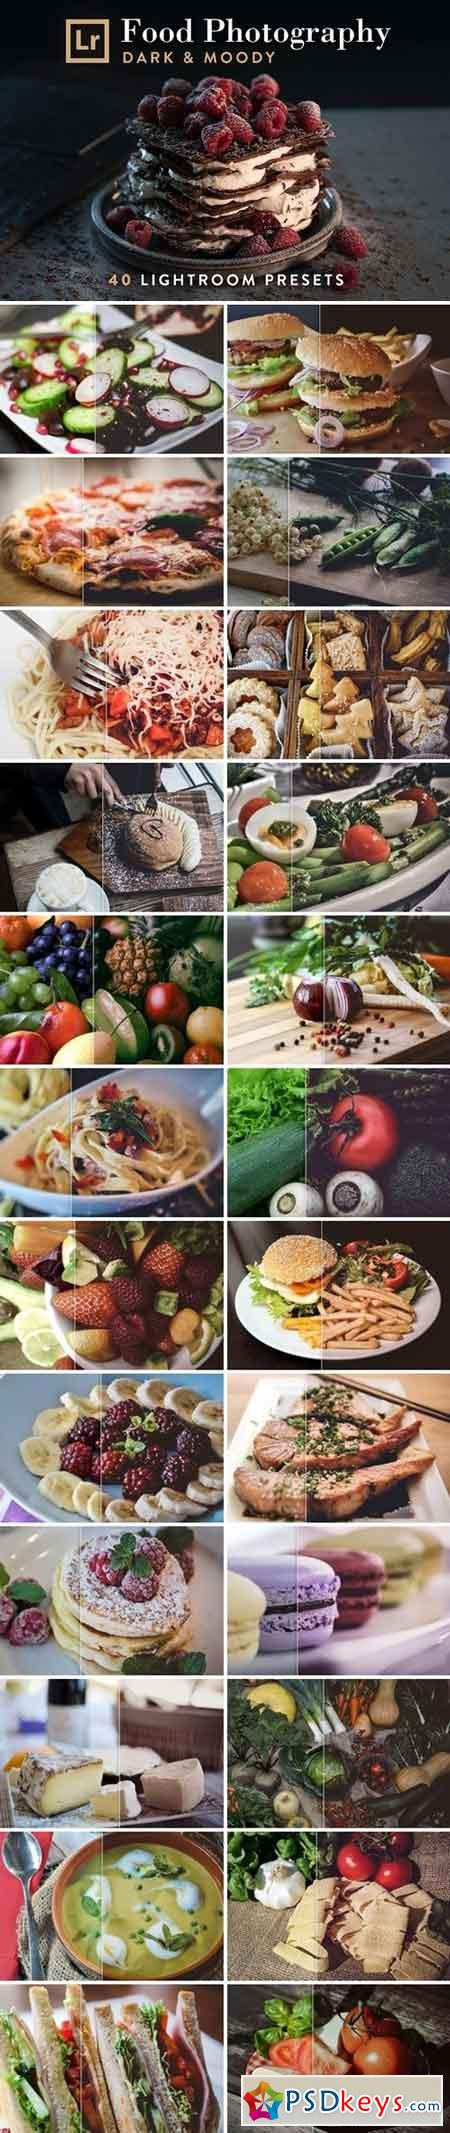 Lightroom Presets Moody Food Photos 2544461